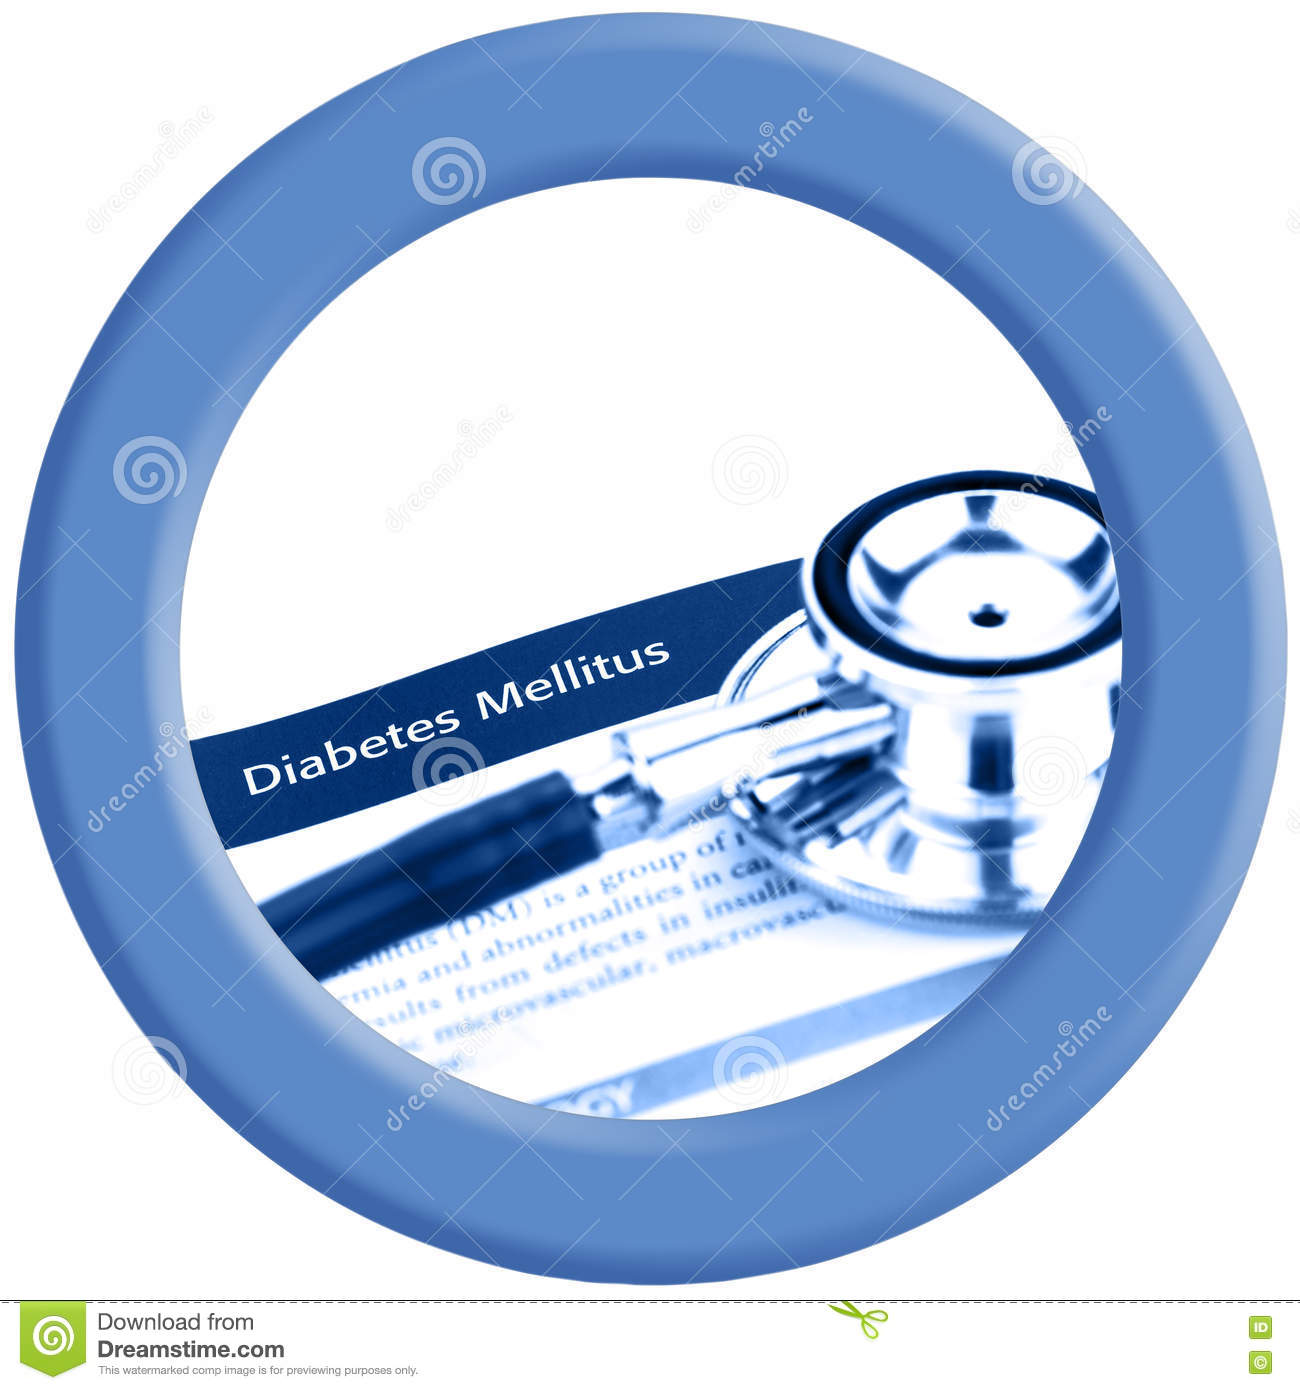 blue circle of paper on white background symbol of world diabetes blue circle of world diabetes day logo stock photos